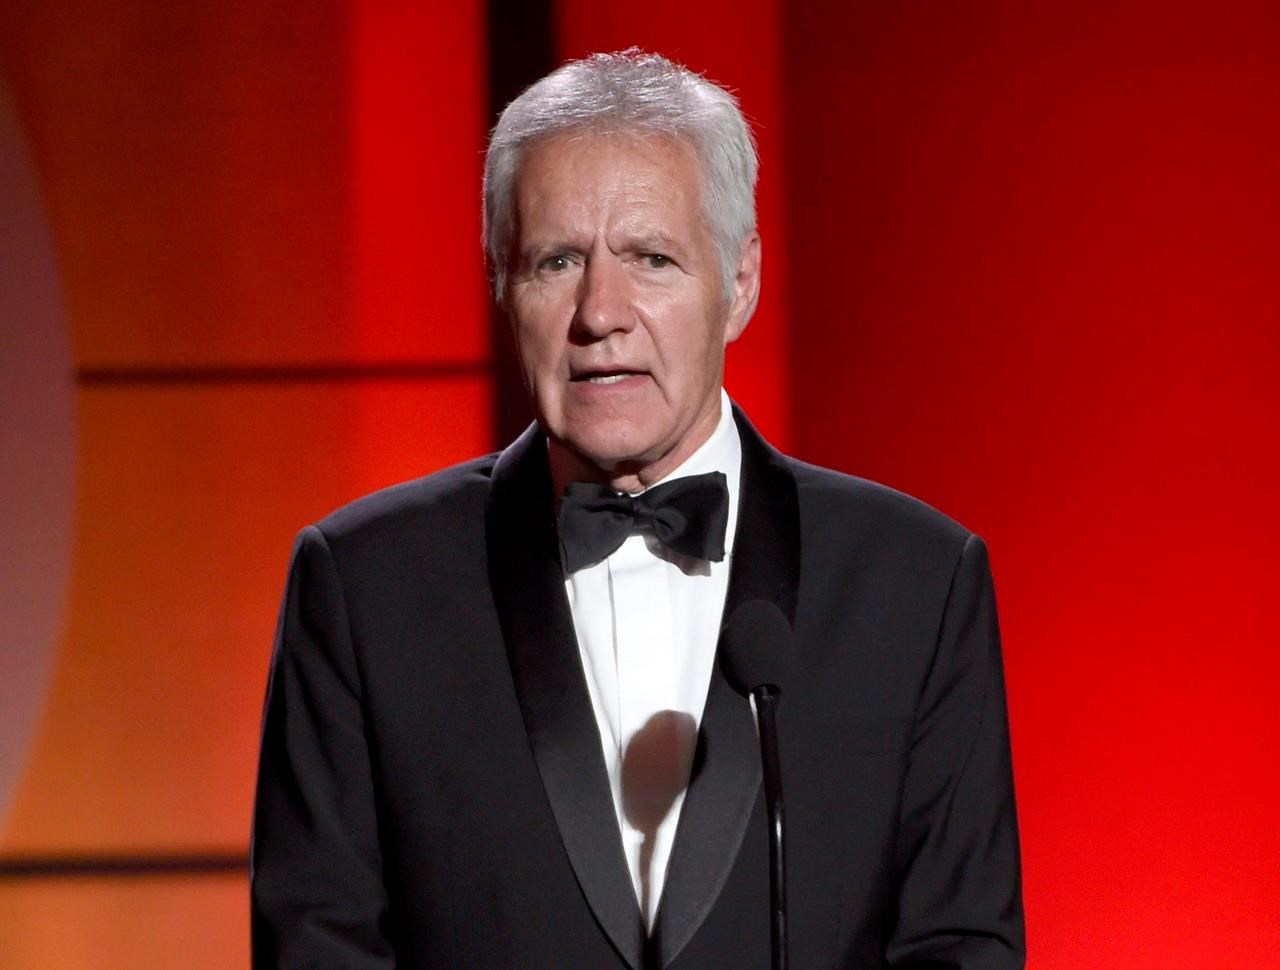 Cancer-Stricken Alex Trebek Wishes He Had Married His Wife Earlier